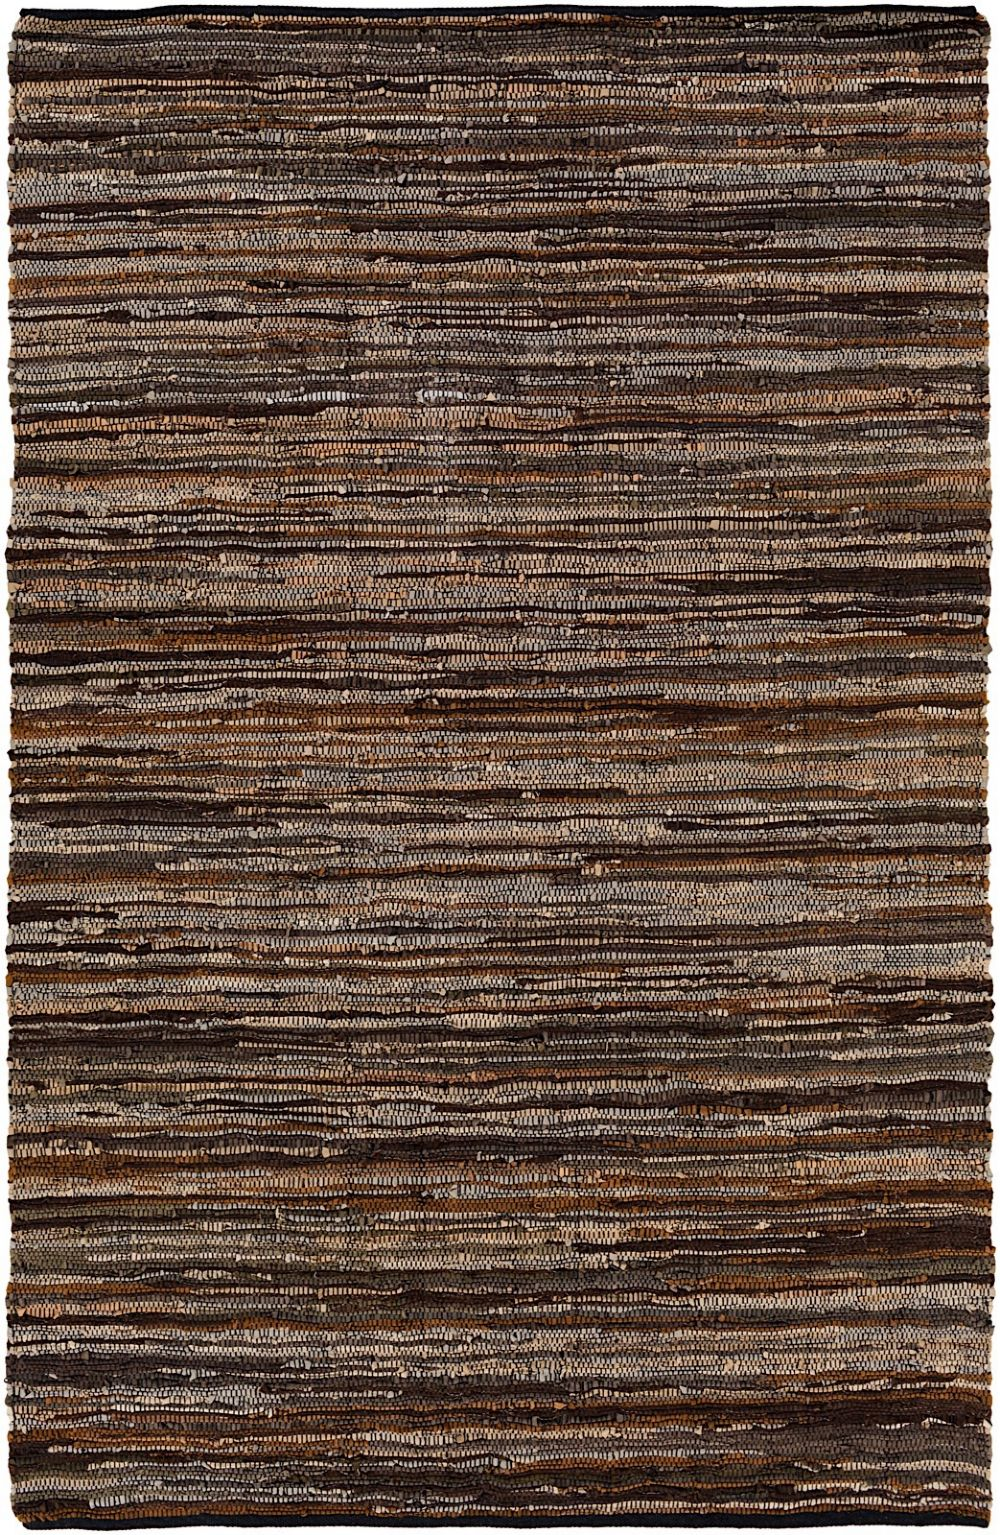 surya log cabin animal inspirations area rug collection